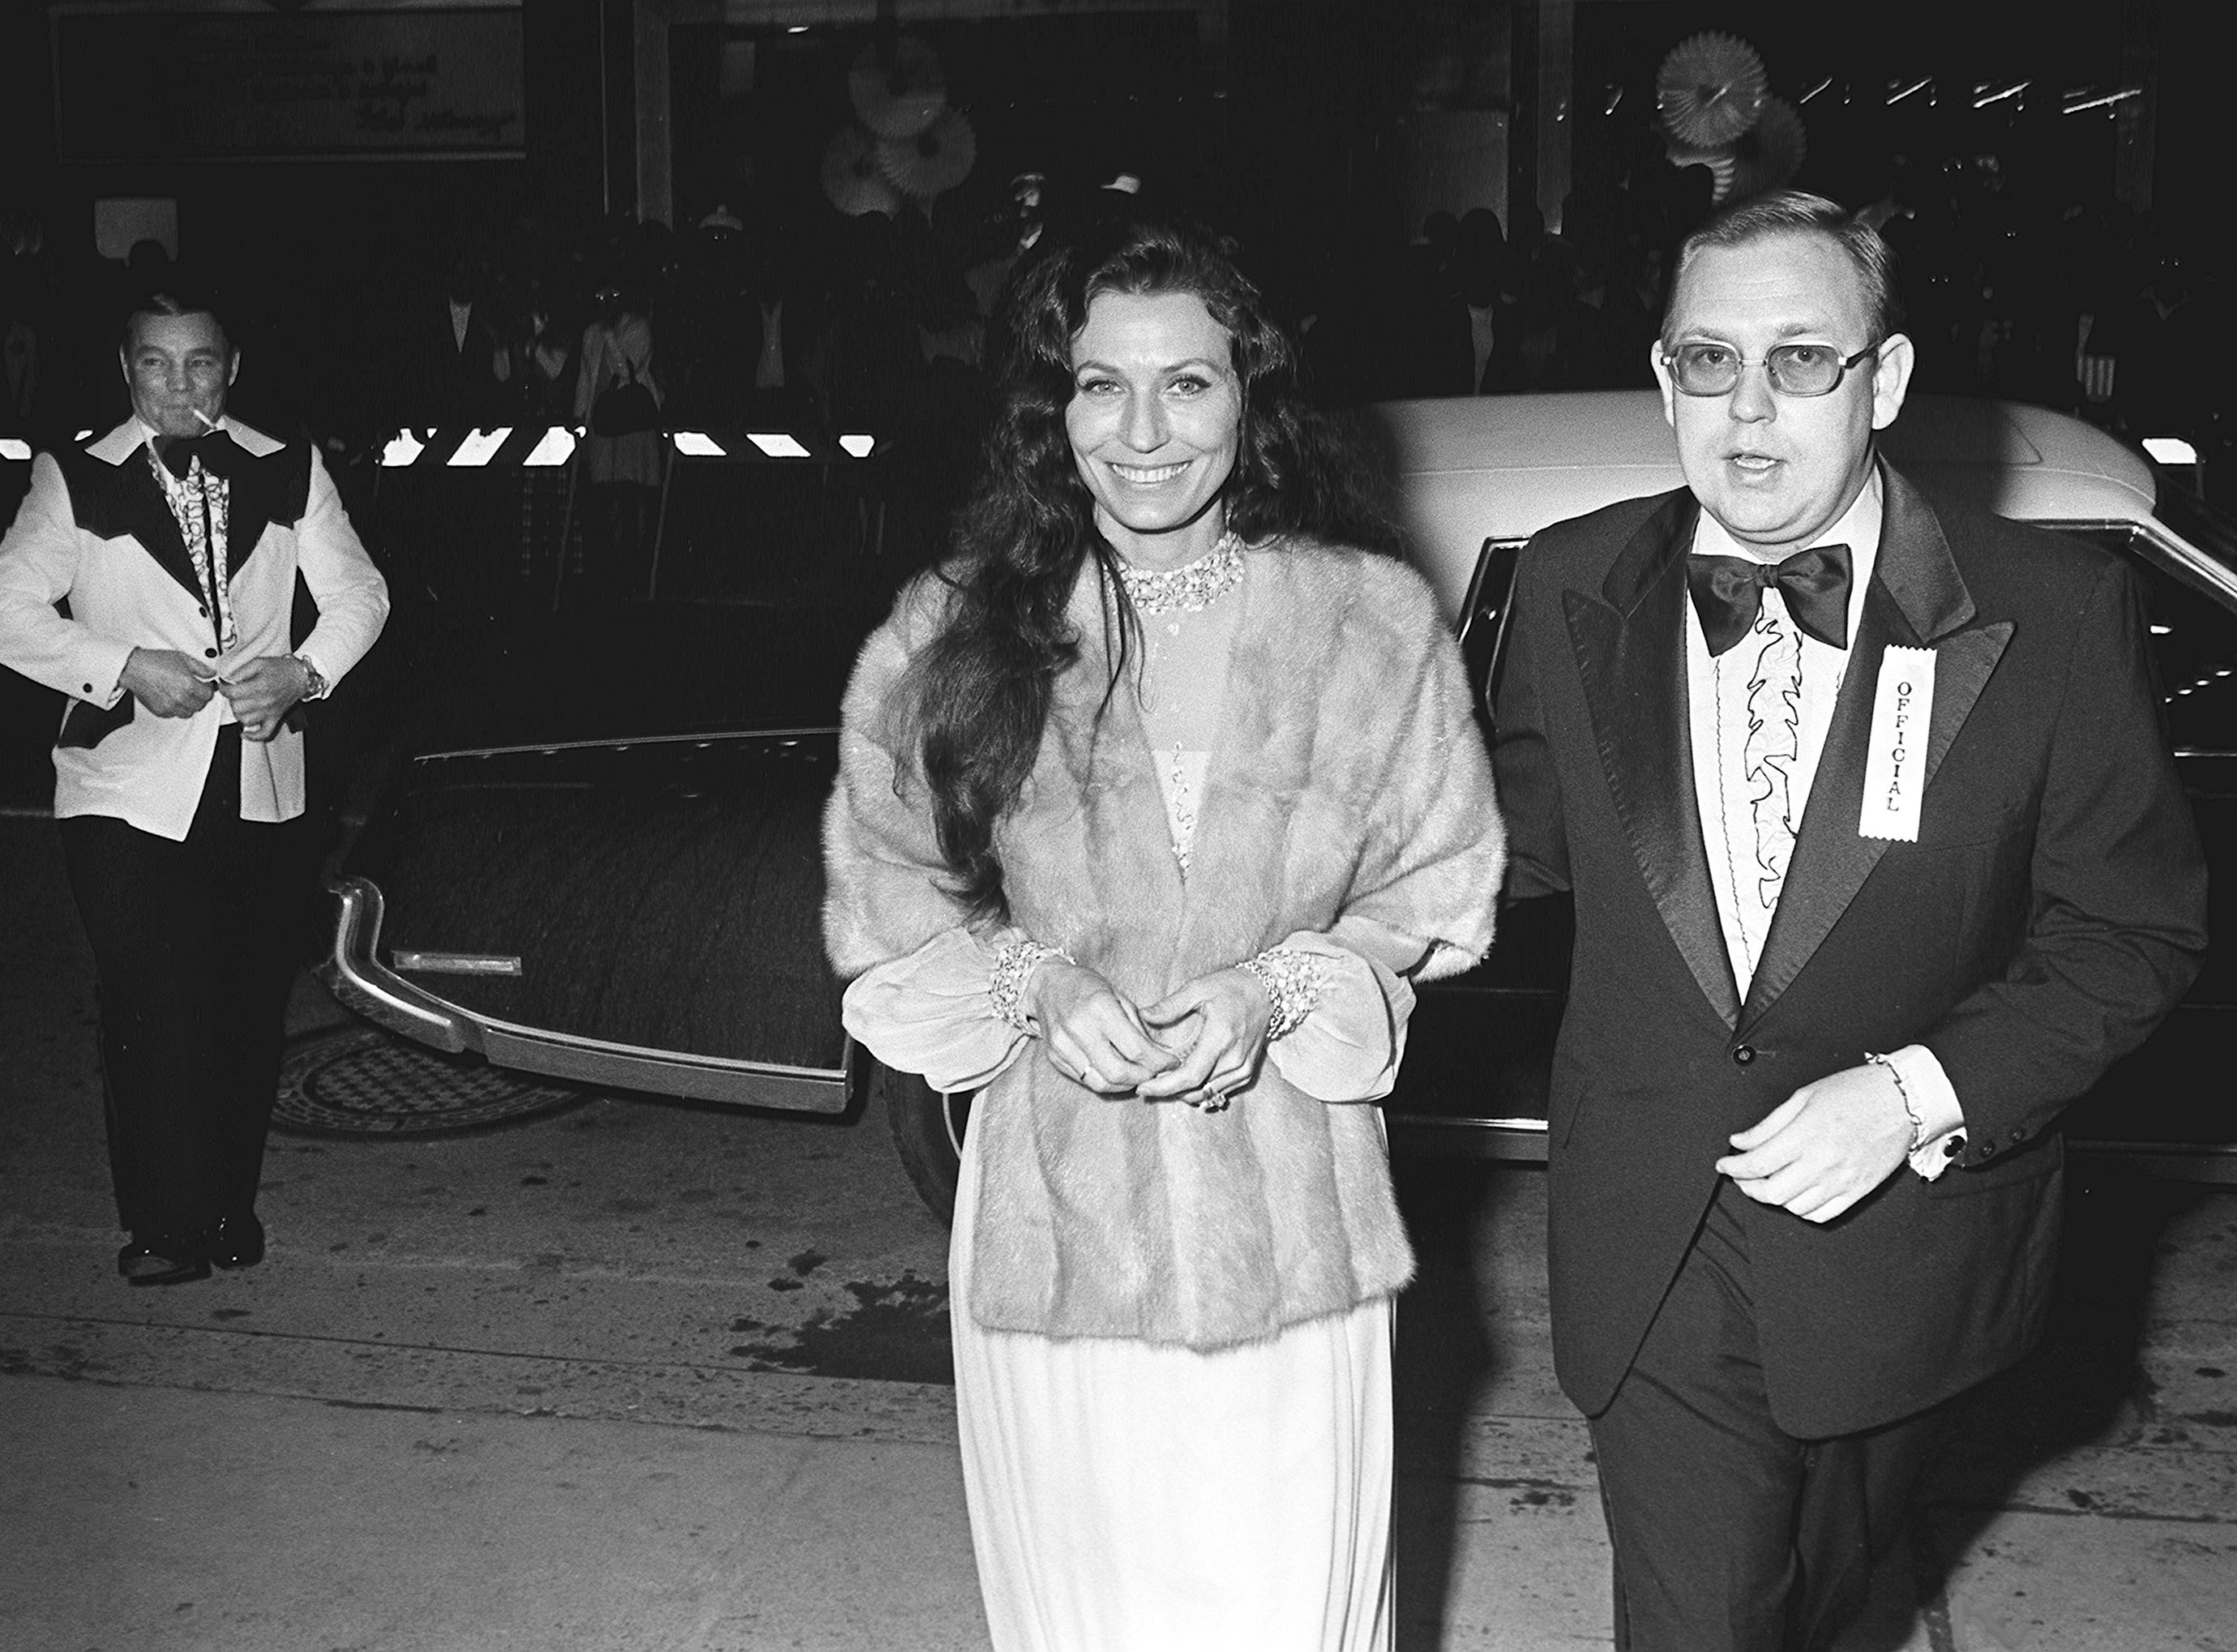 Loretta Lynn, center, arrives at the Tennessee Theater for the 15th Grammy Awards show in Nashville on  March 3, 1973. The show, which highlighted the 11 winners, was televised on CBS.